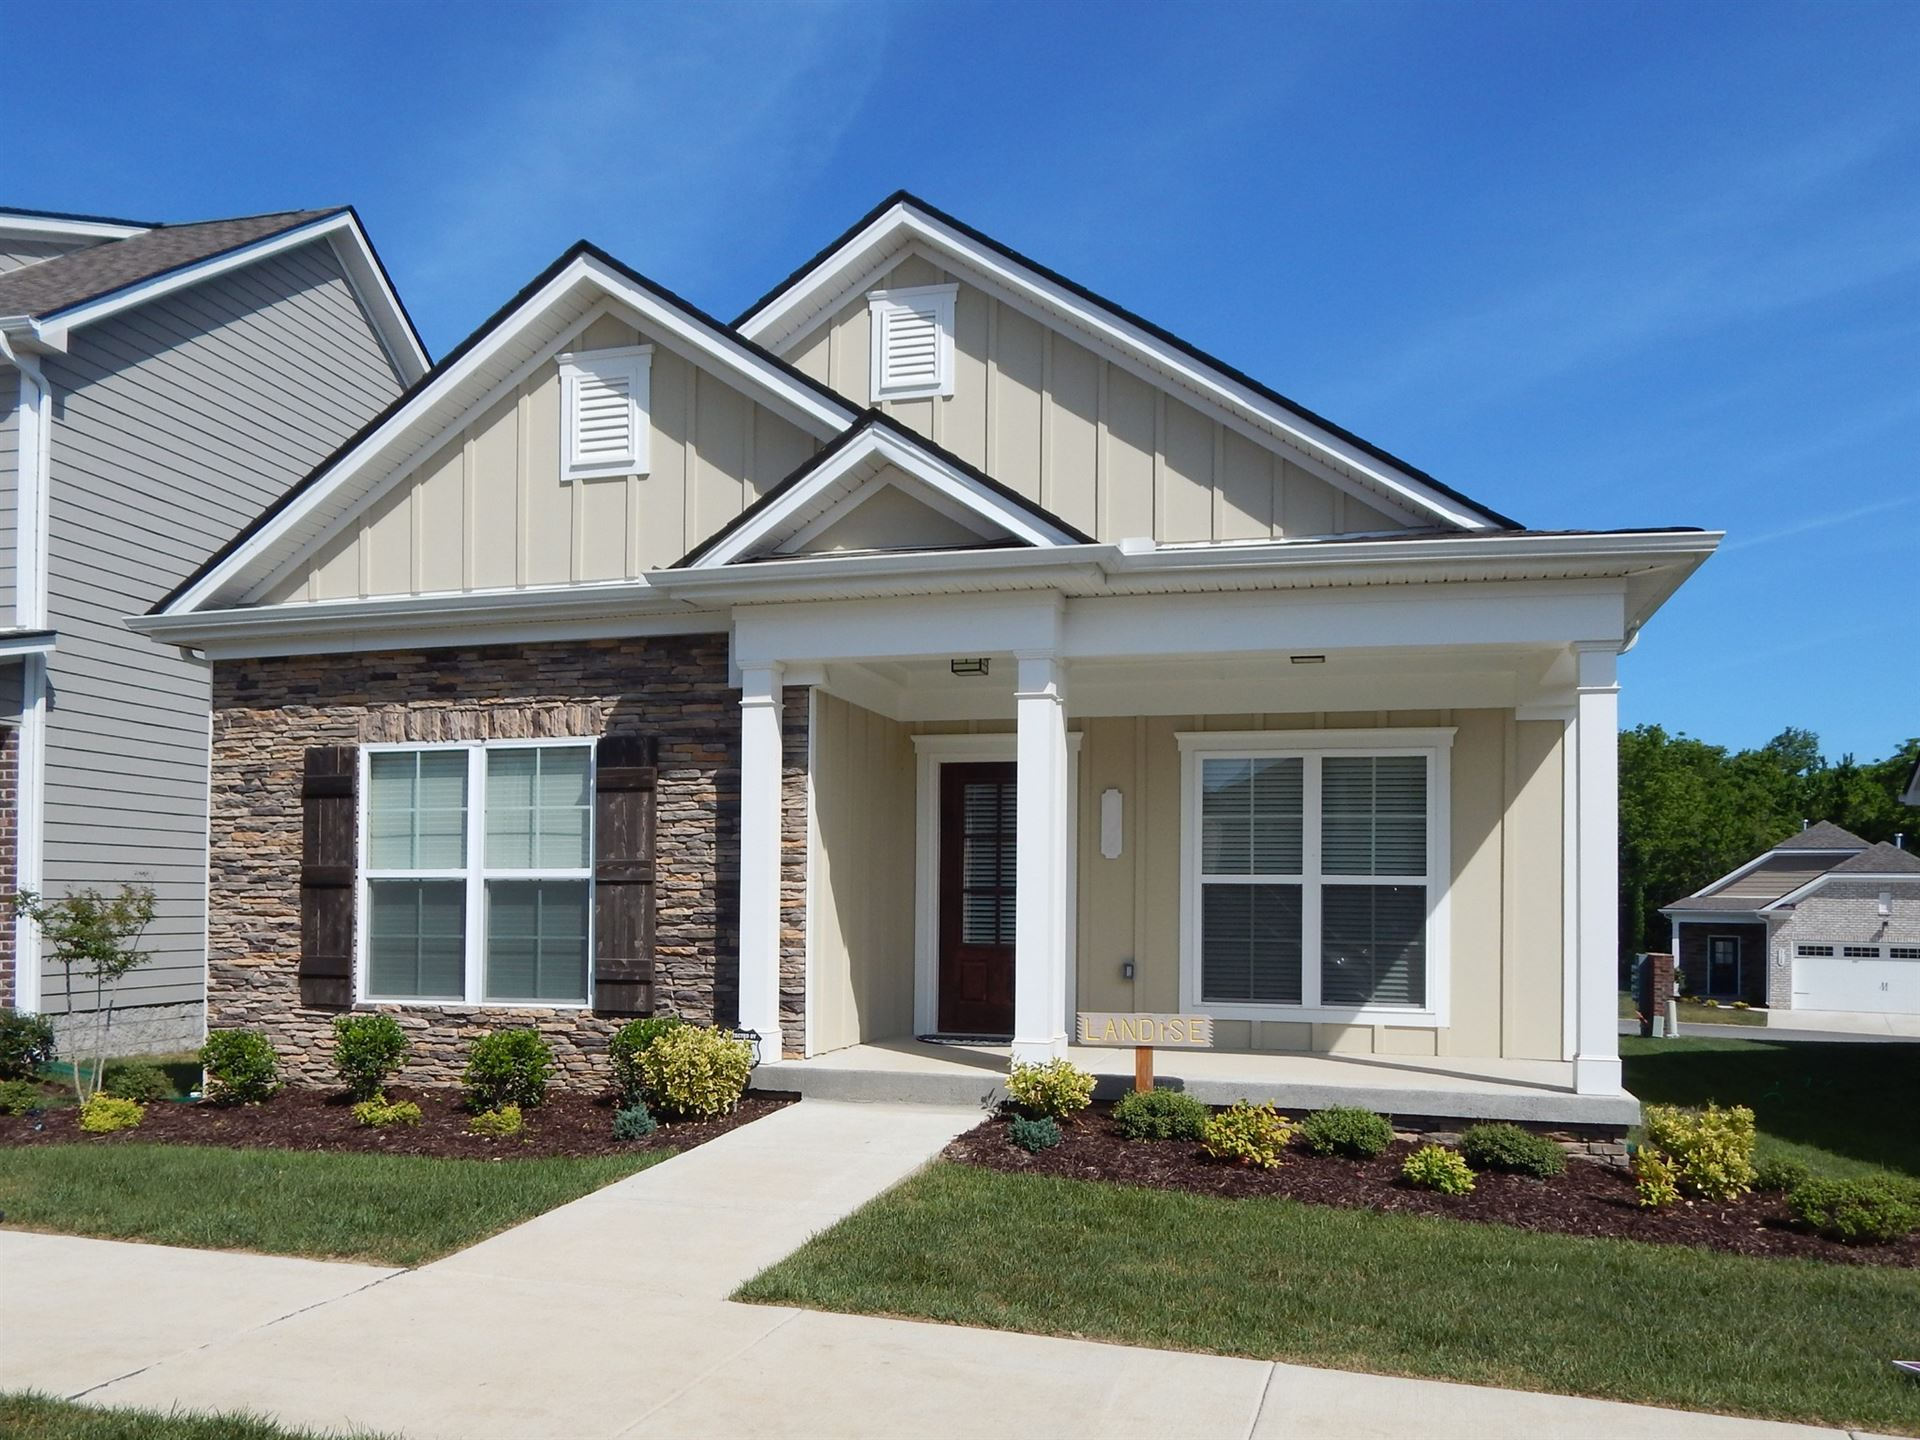 Photo of 712 Goswell Dr, Nolensville, TN 37135 (MLS # 2217771)